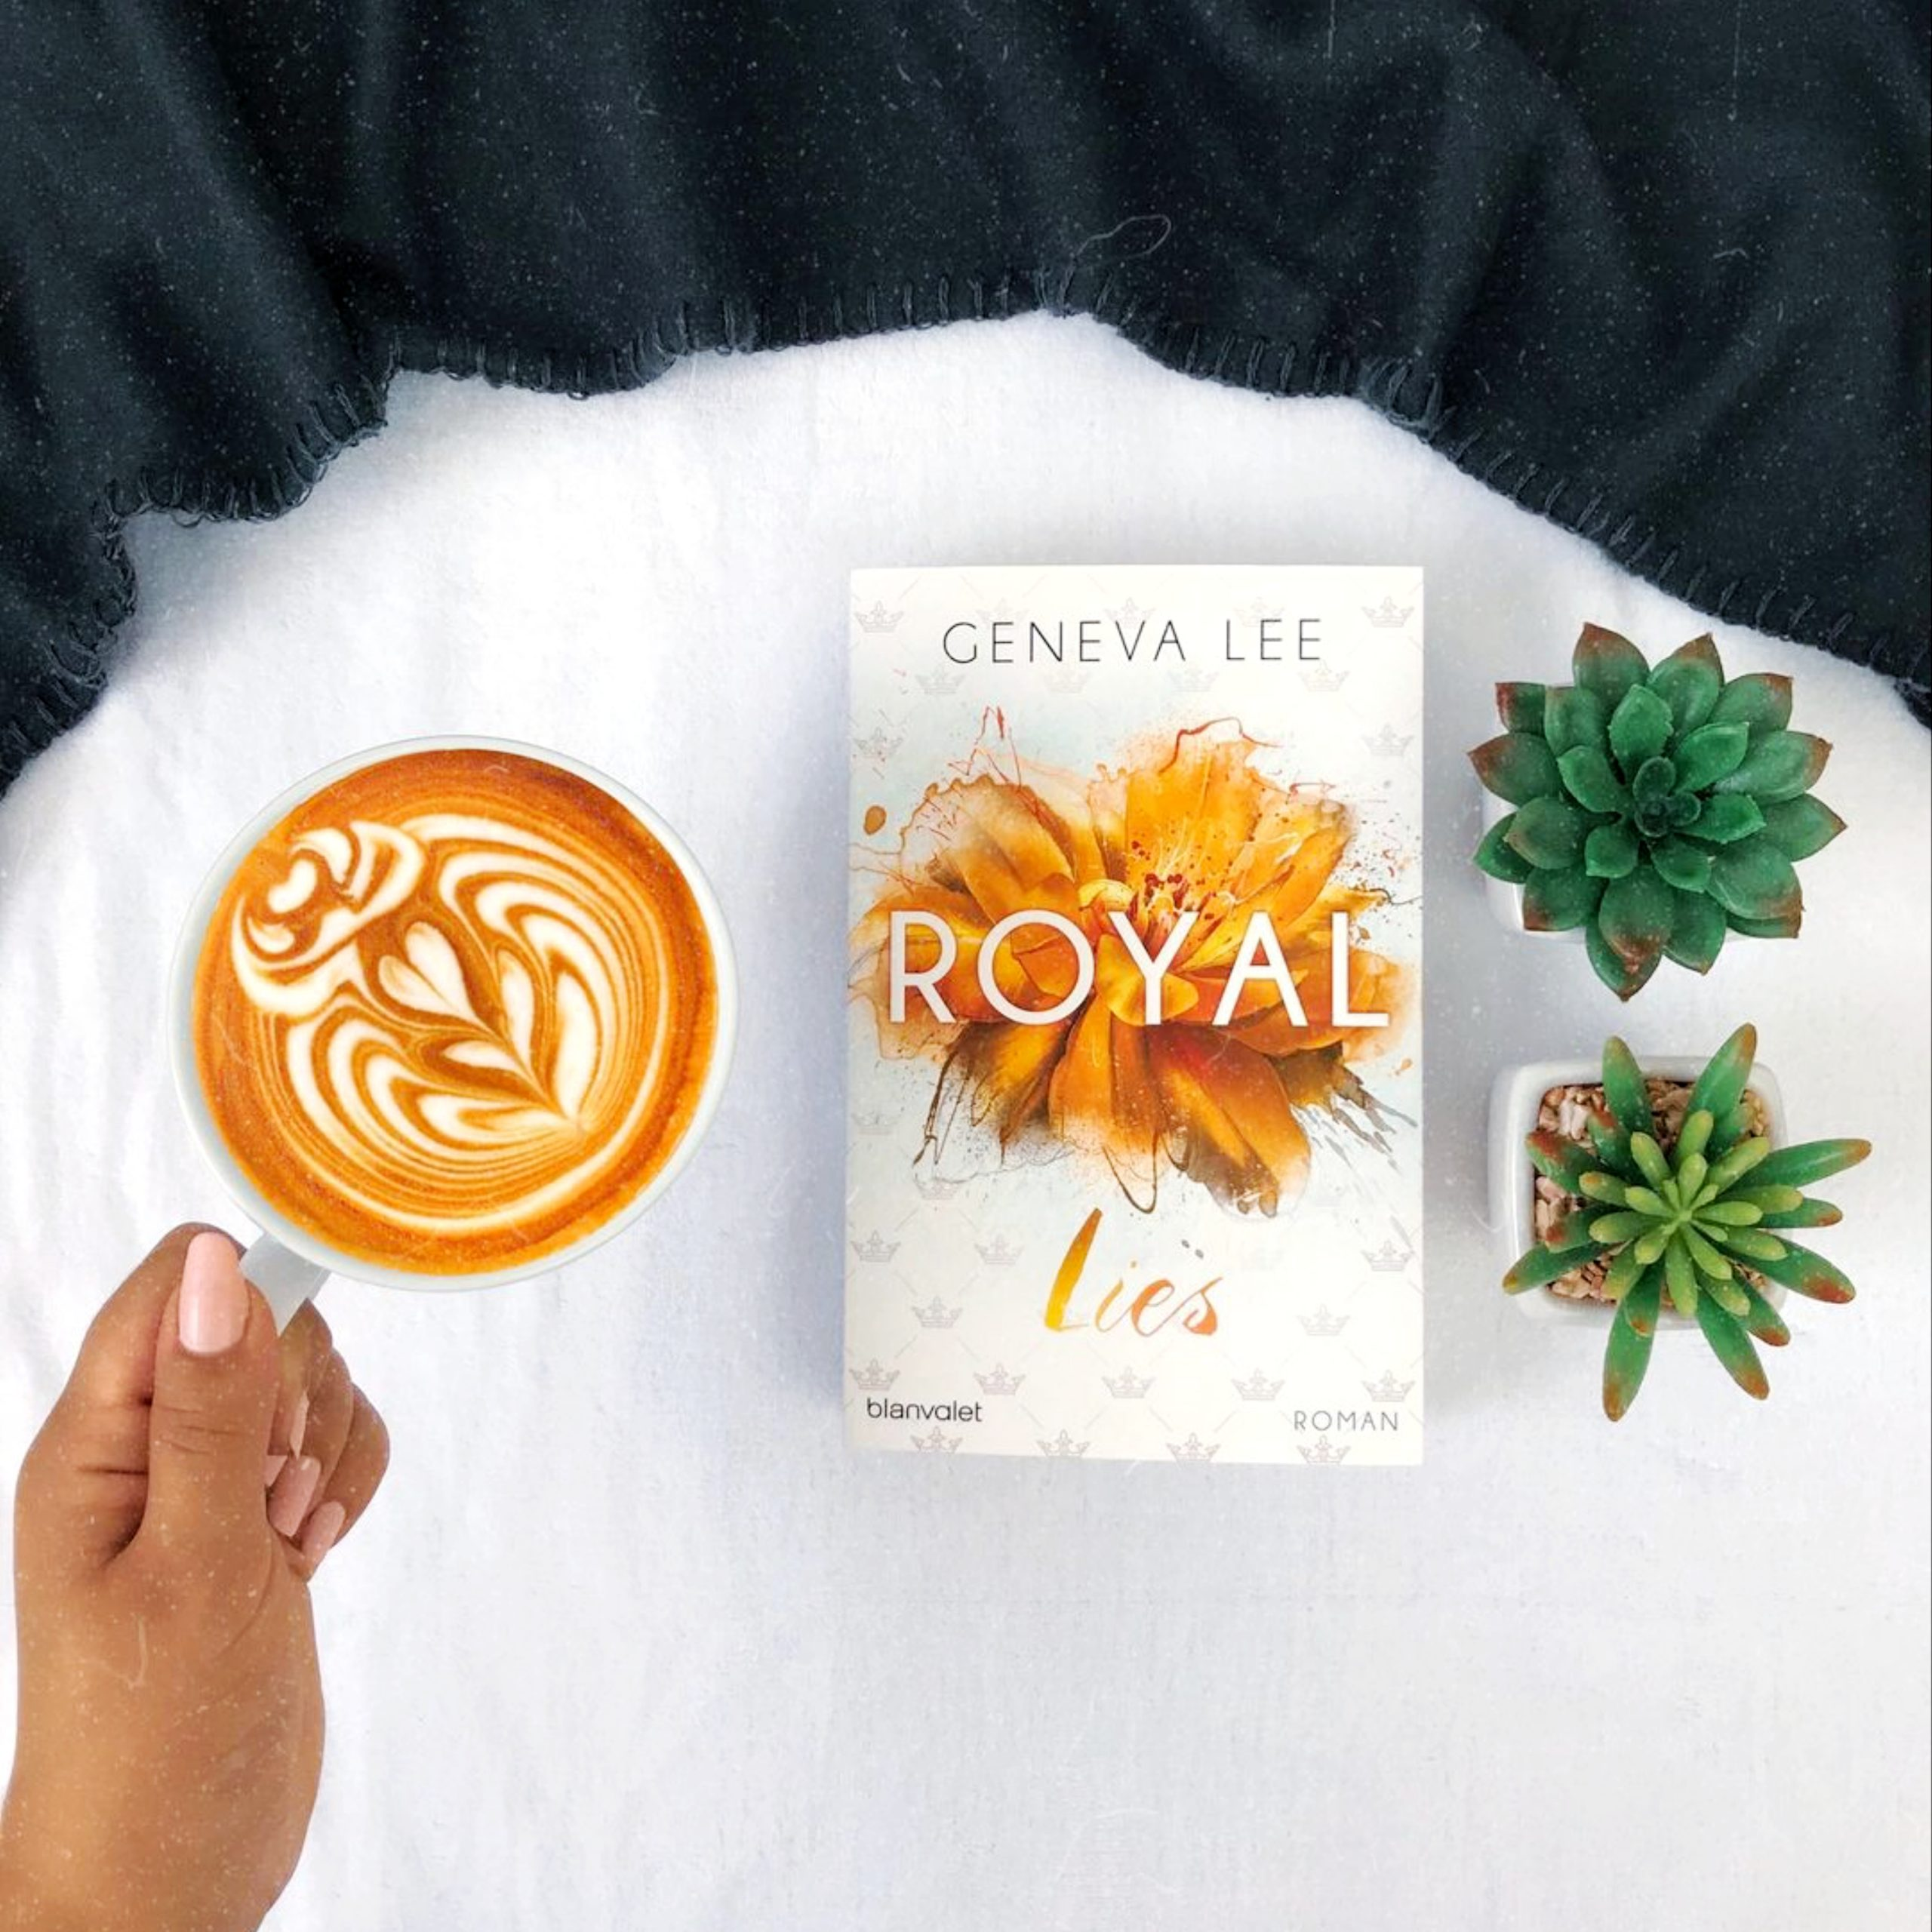 book, coffee and plants